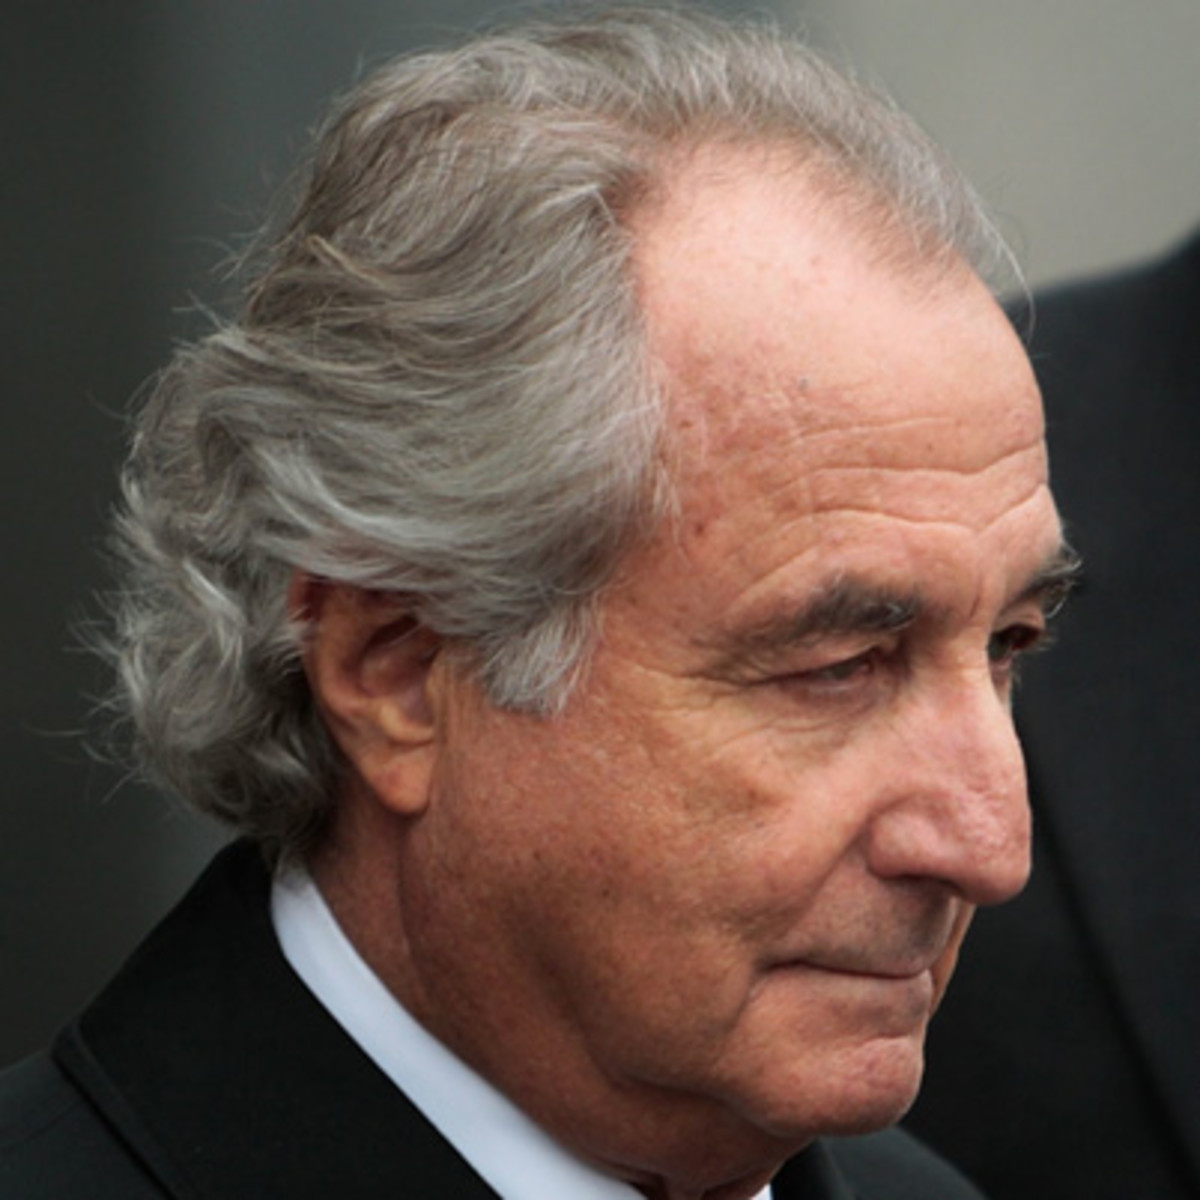 """bernard lawrence bernie madoff """"i have faith in bernie never to shaft me"""" ~ oscar wilde on bernie madoff """"the only jew i ever trusted"""" ~ adolph hitler on bernie madoff bernard lawrence bernie&quot madoff (born april 29, 1938) is a former philanthropist and current political prisoner in the united states of america."""